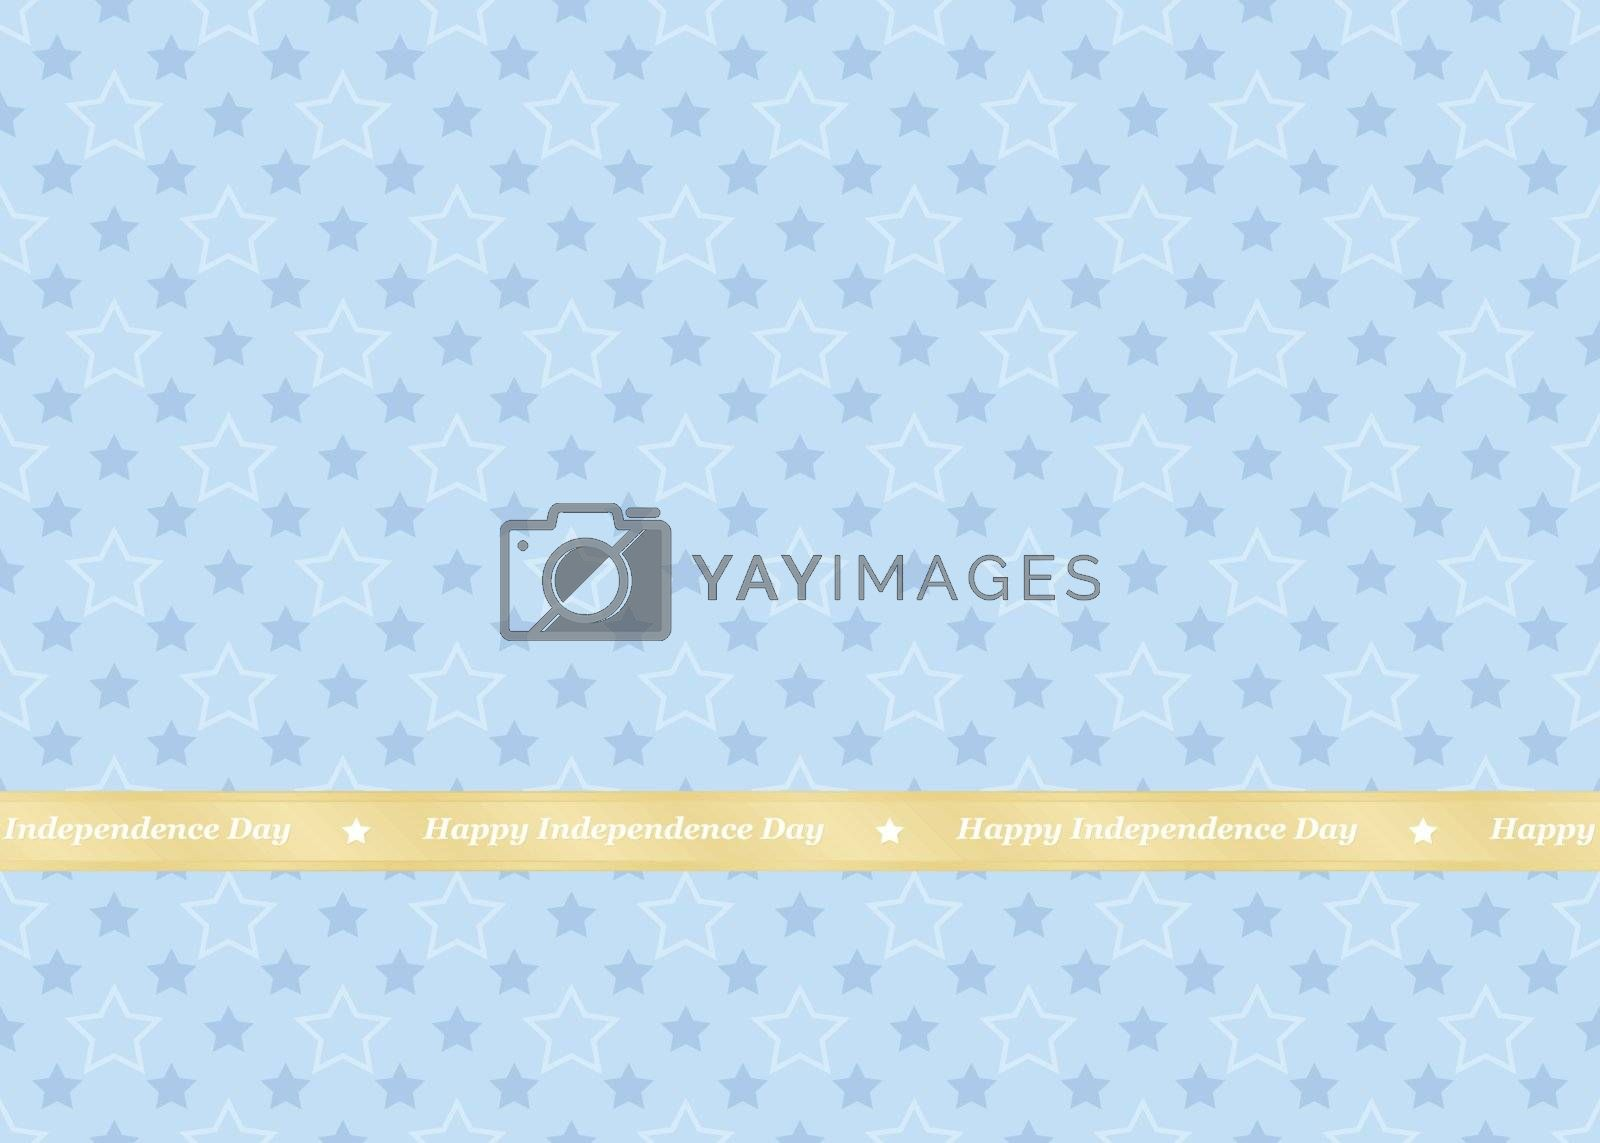 Happy Independence Day background with stars pattern